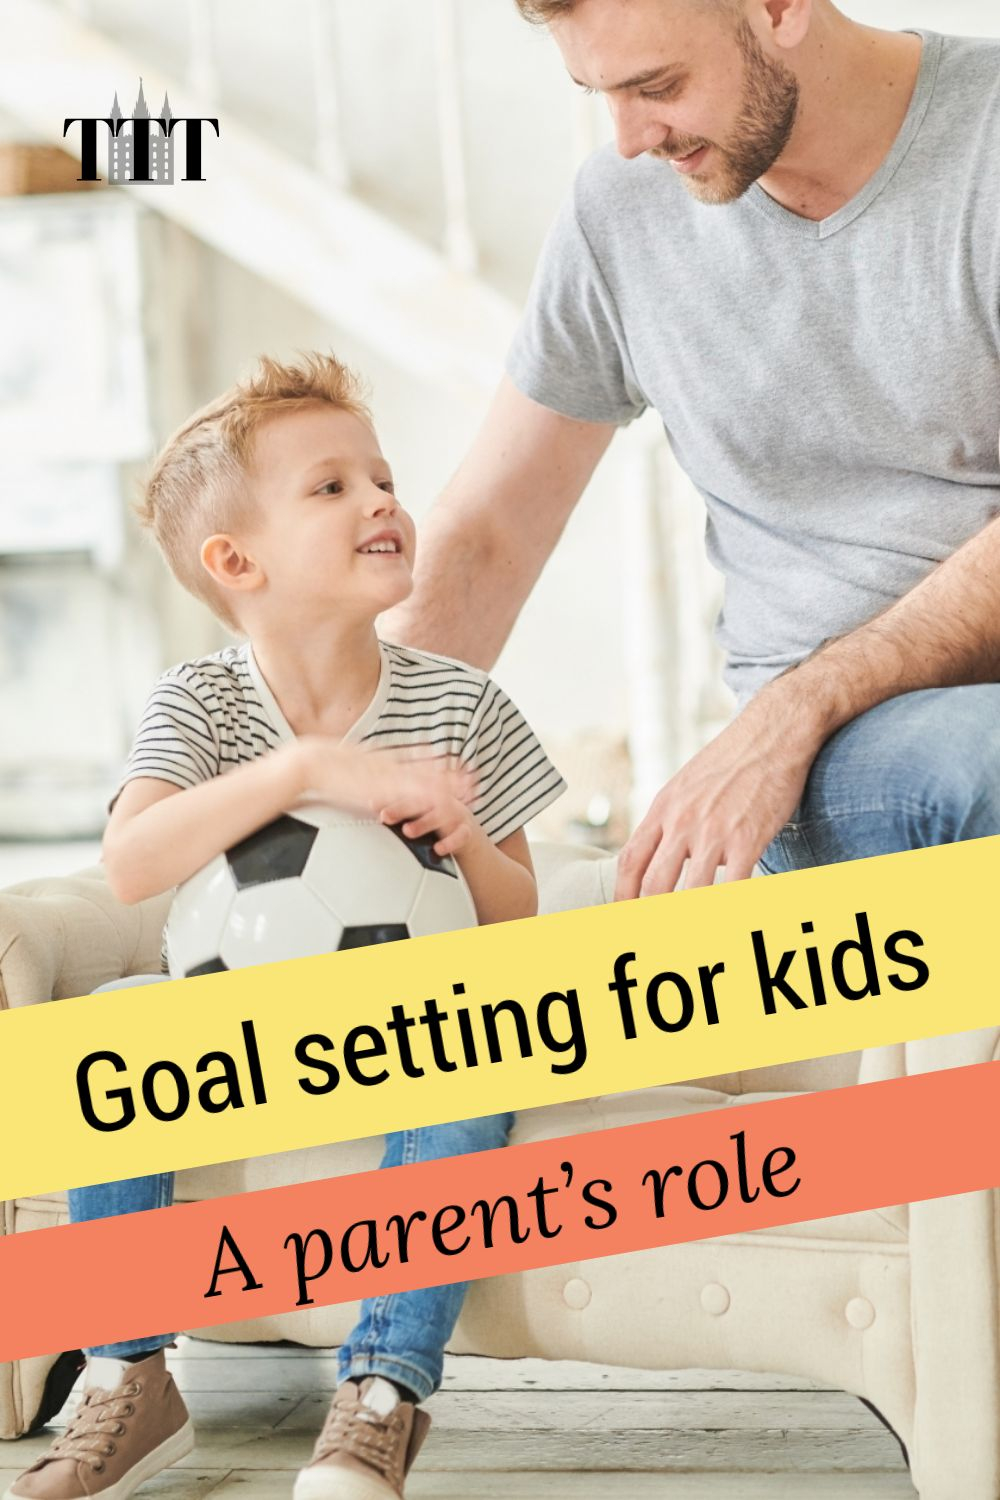 Parent's role in kids goals